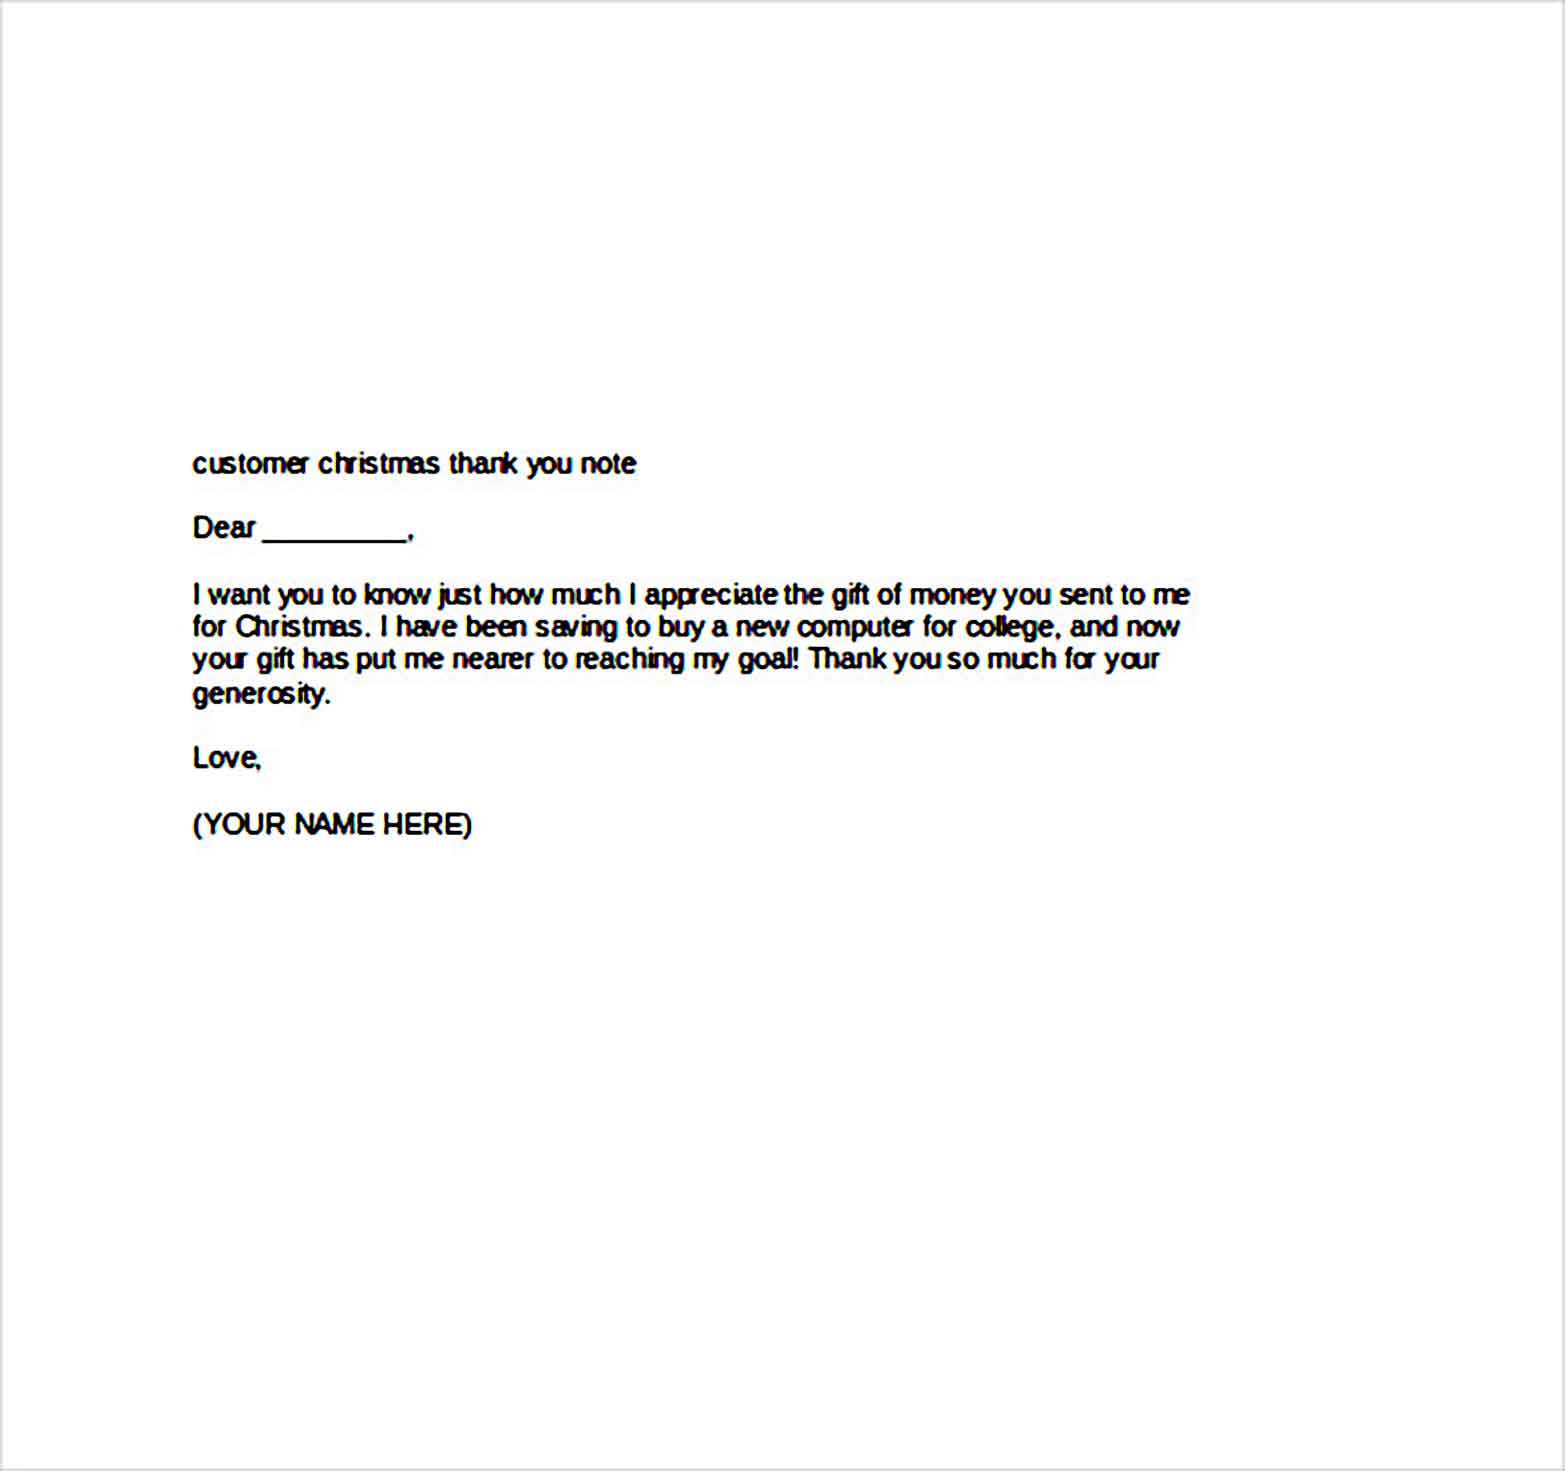 customer christmas thank you note